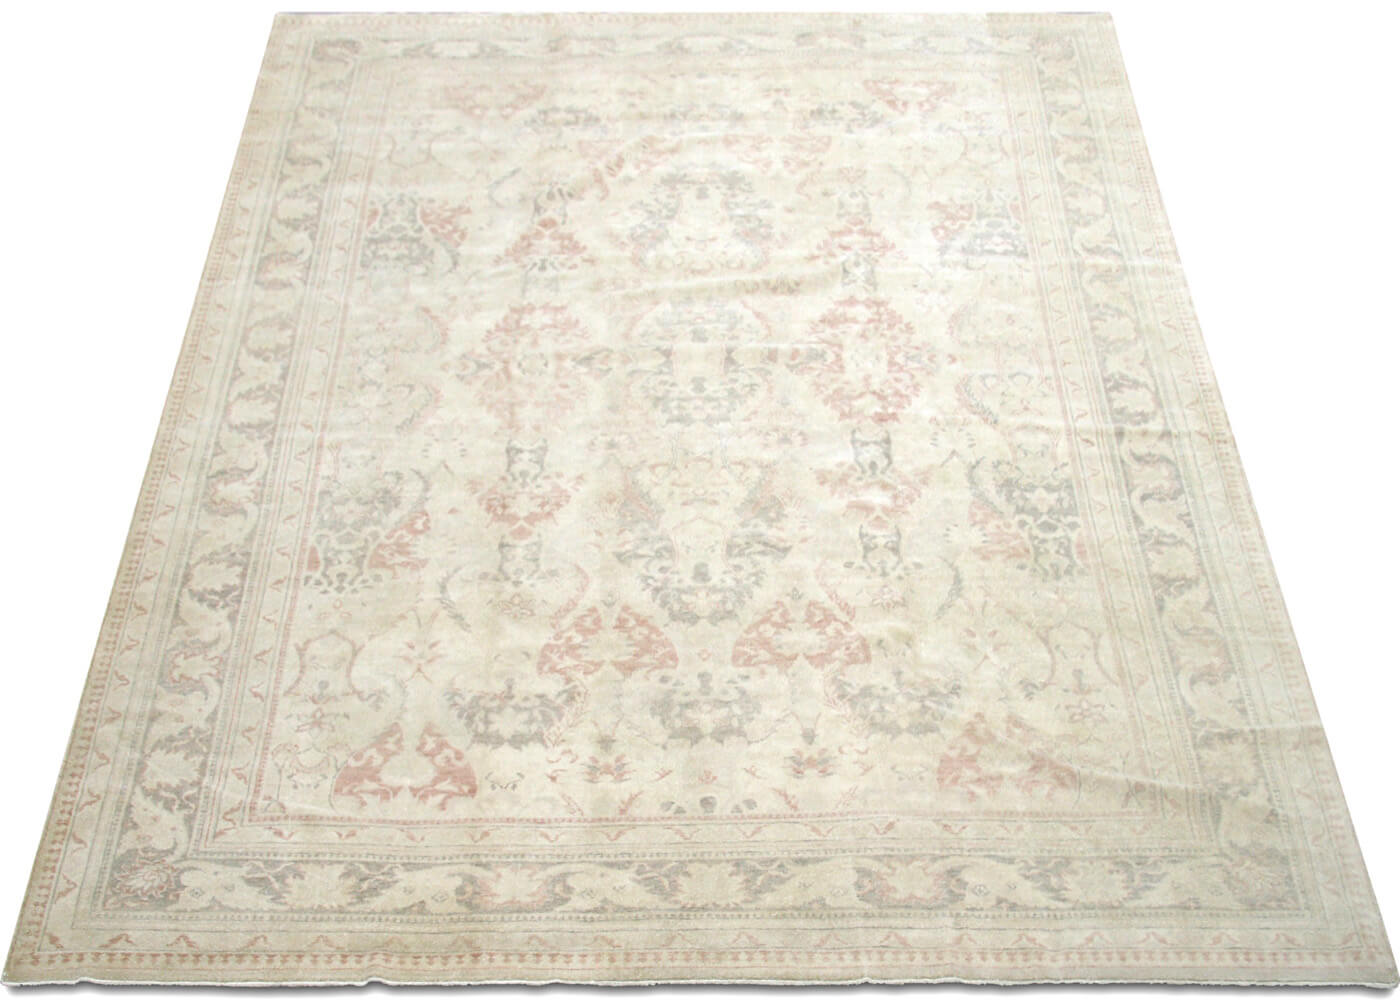 "Recently Woven Turkish Oushak Carpet - 9'2"" x 11'4"""